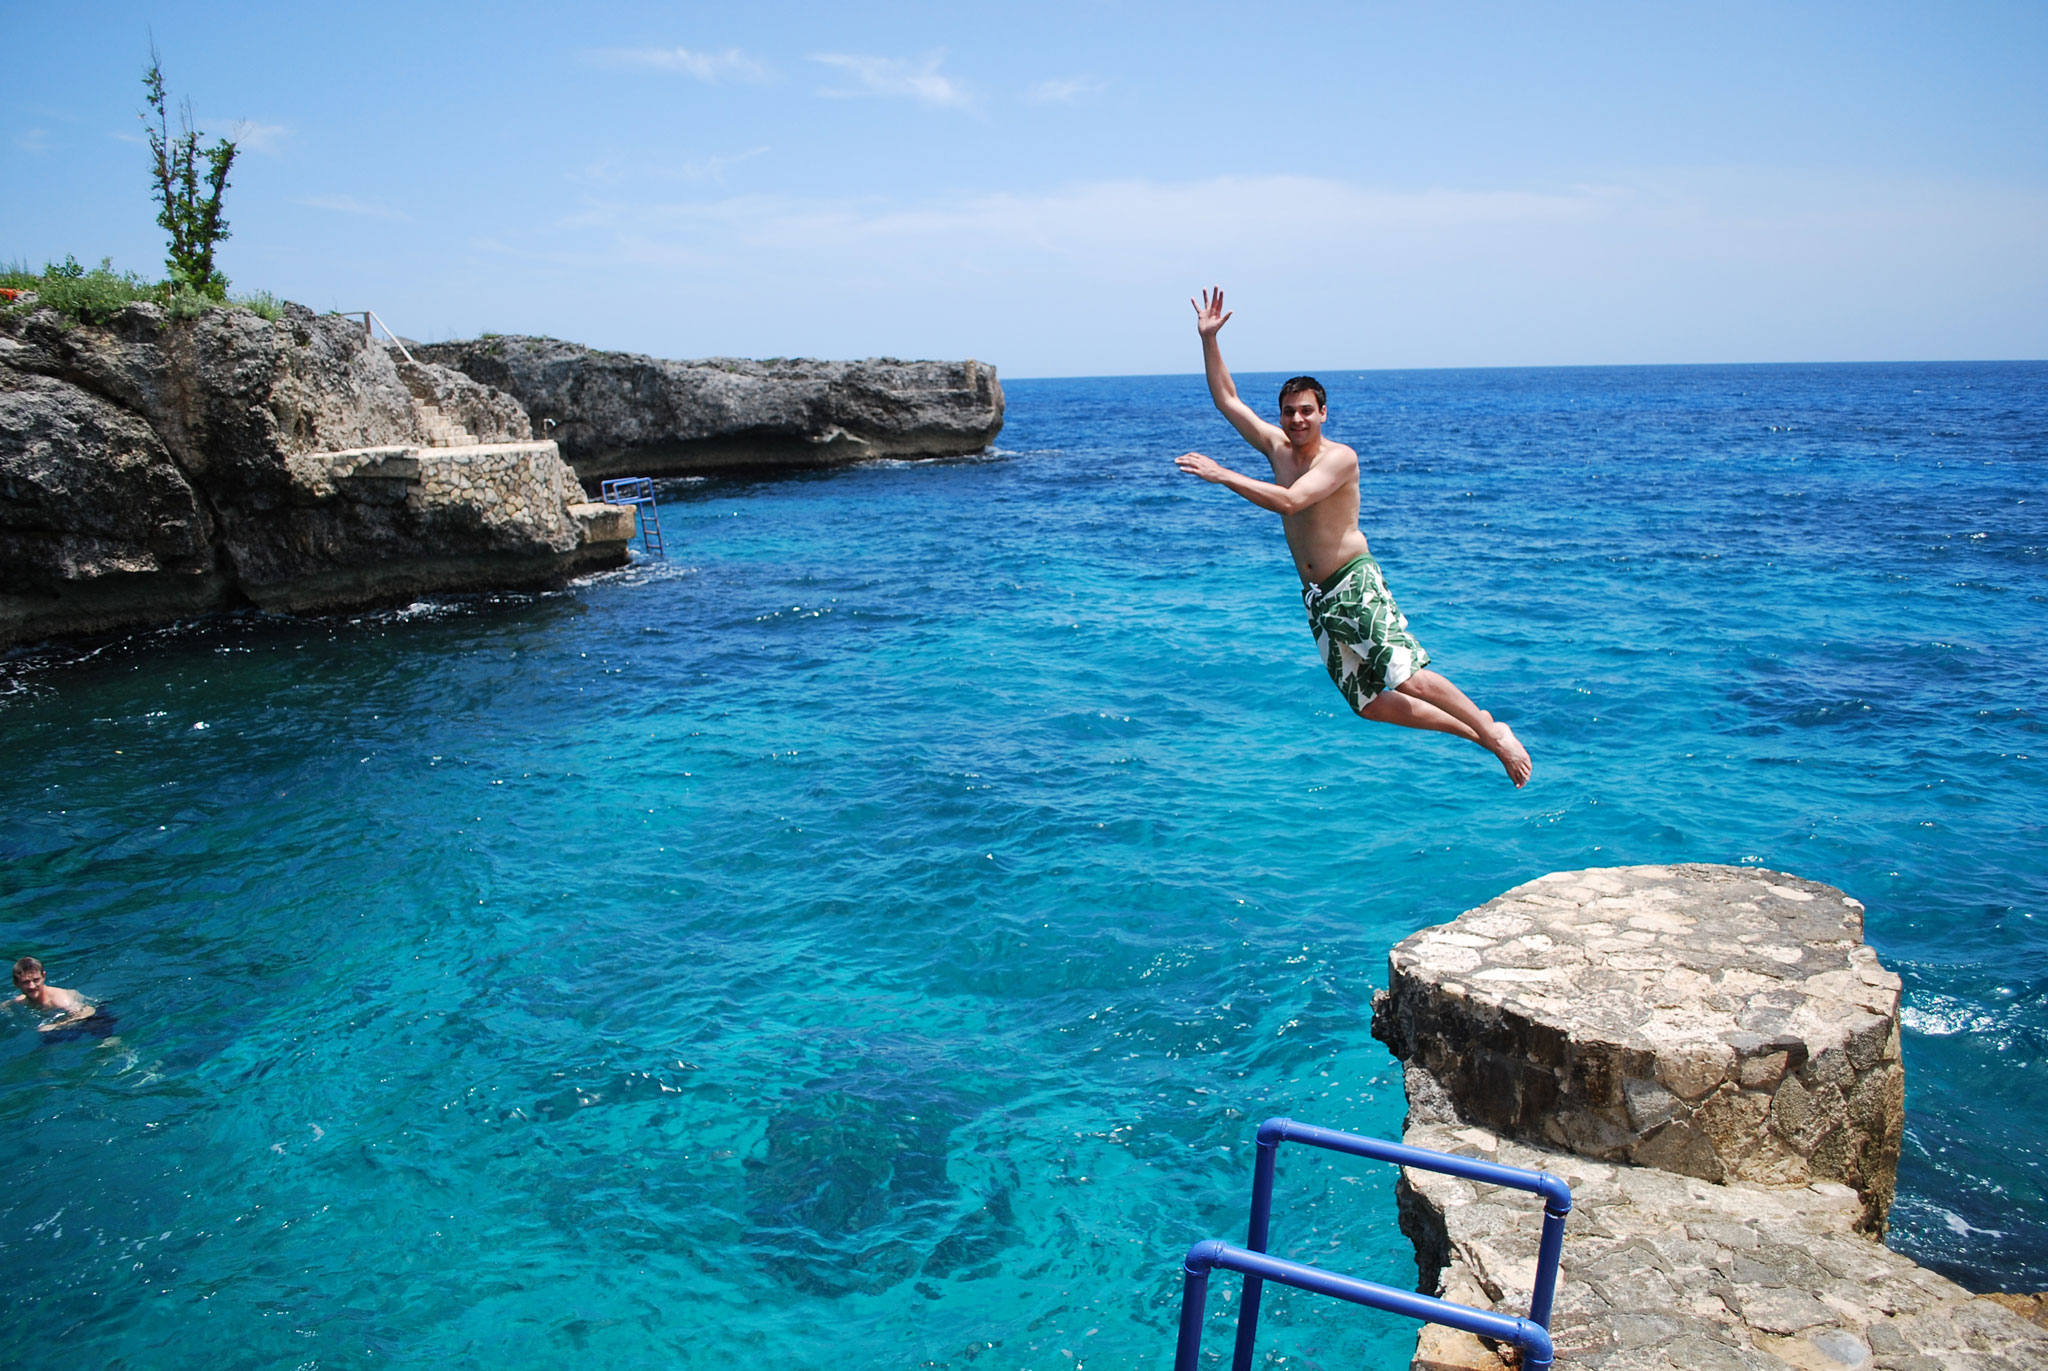 Cliff diving in Negril, Jamaica.